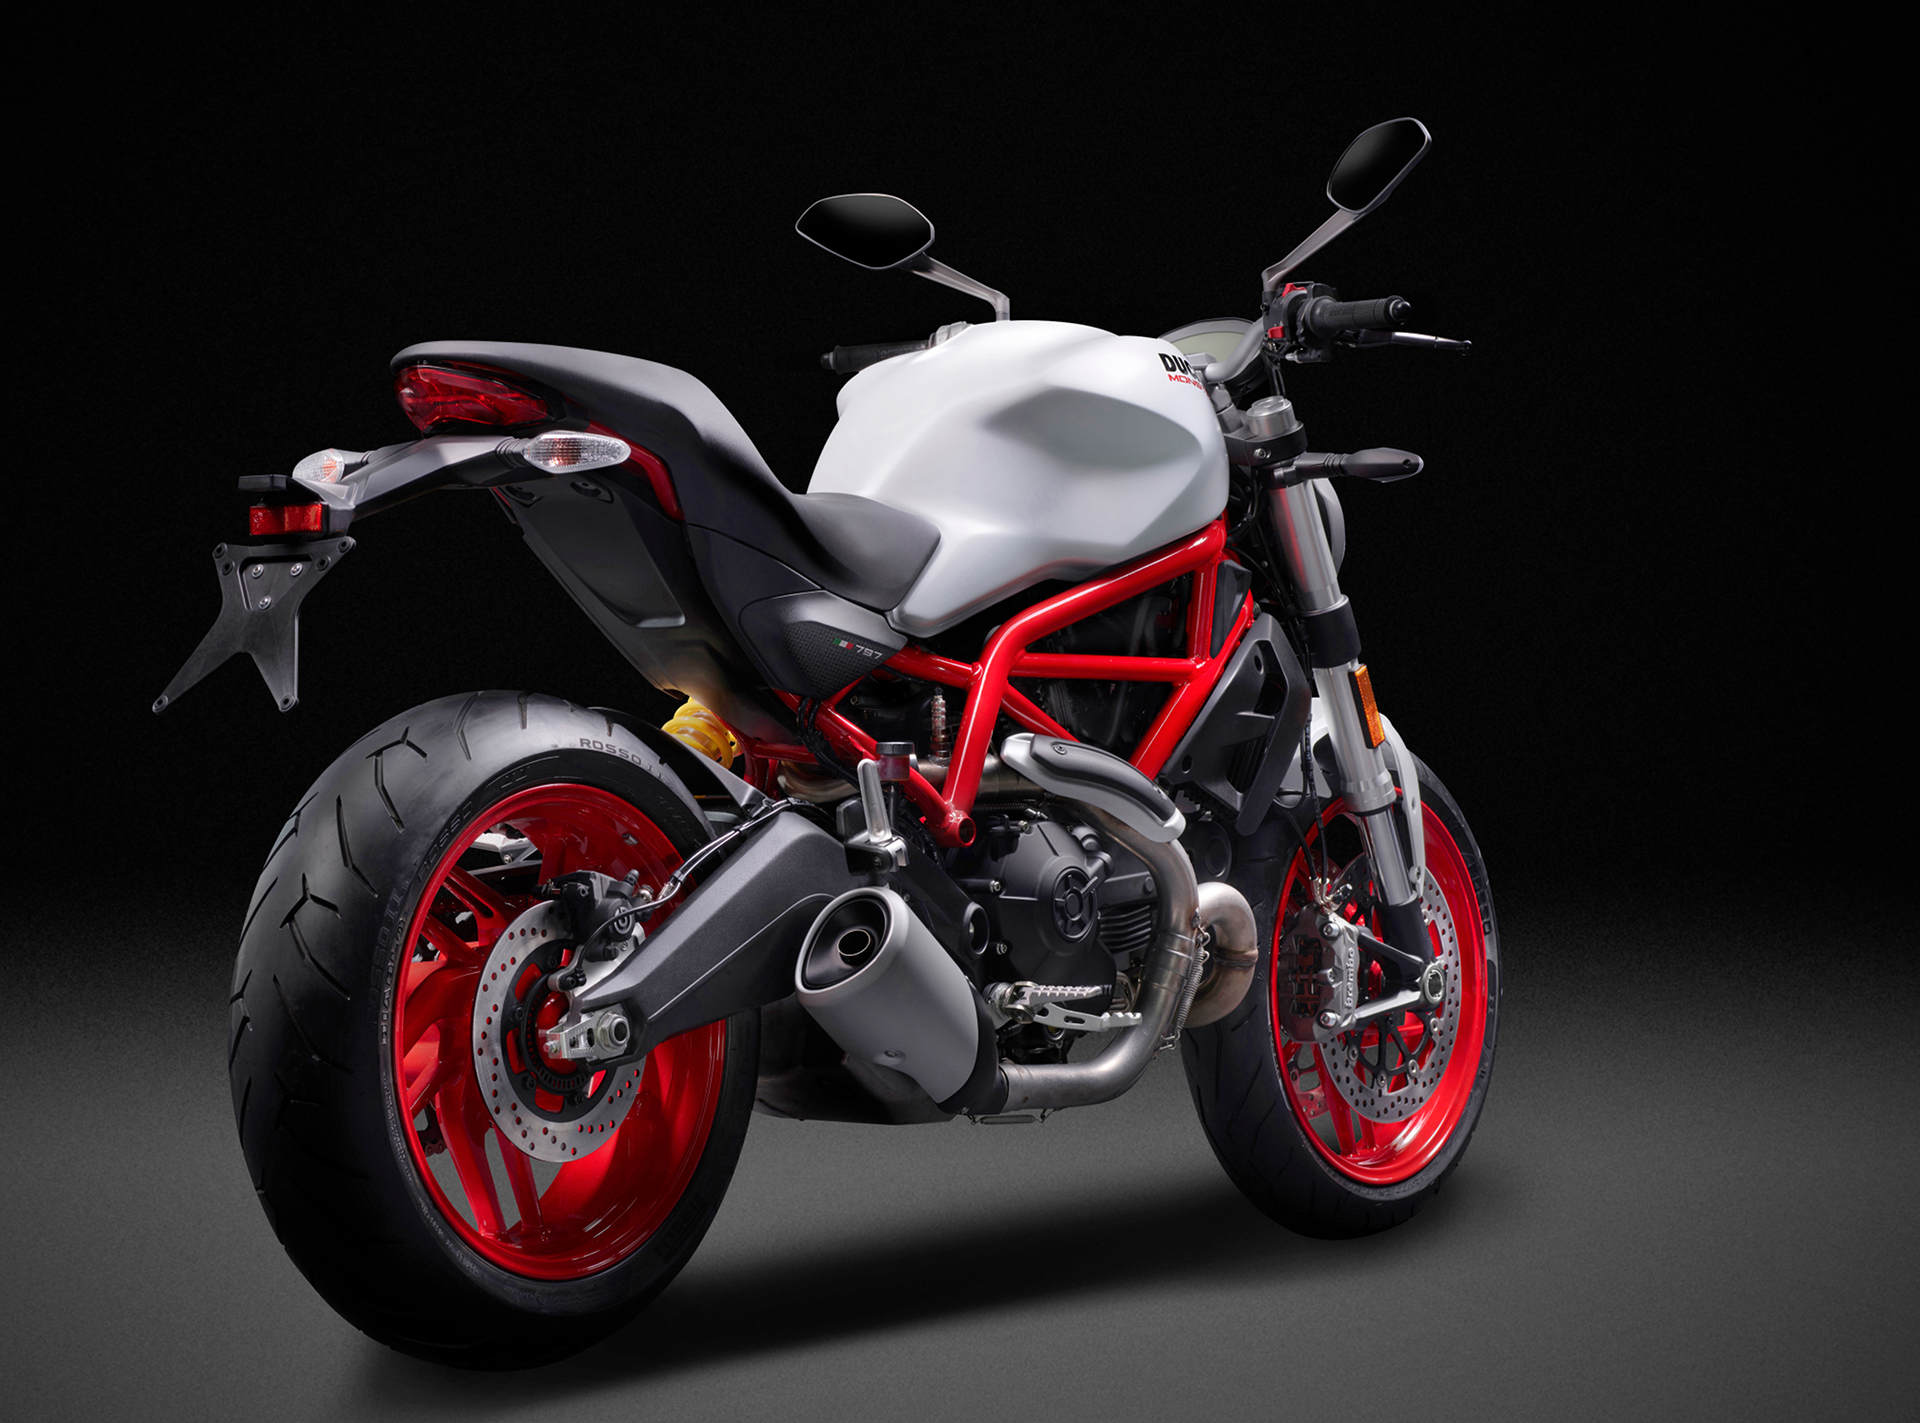 ducati introduces new monster 797 (with video) « motorcycledaily